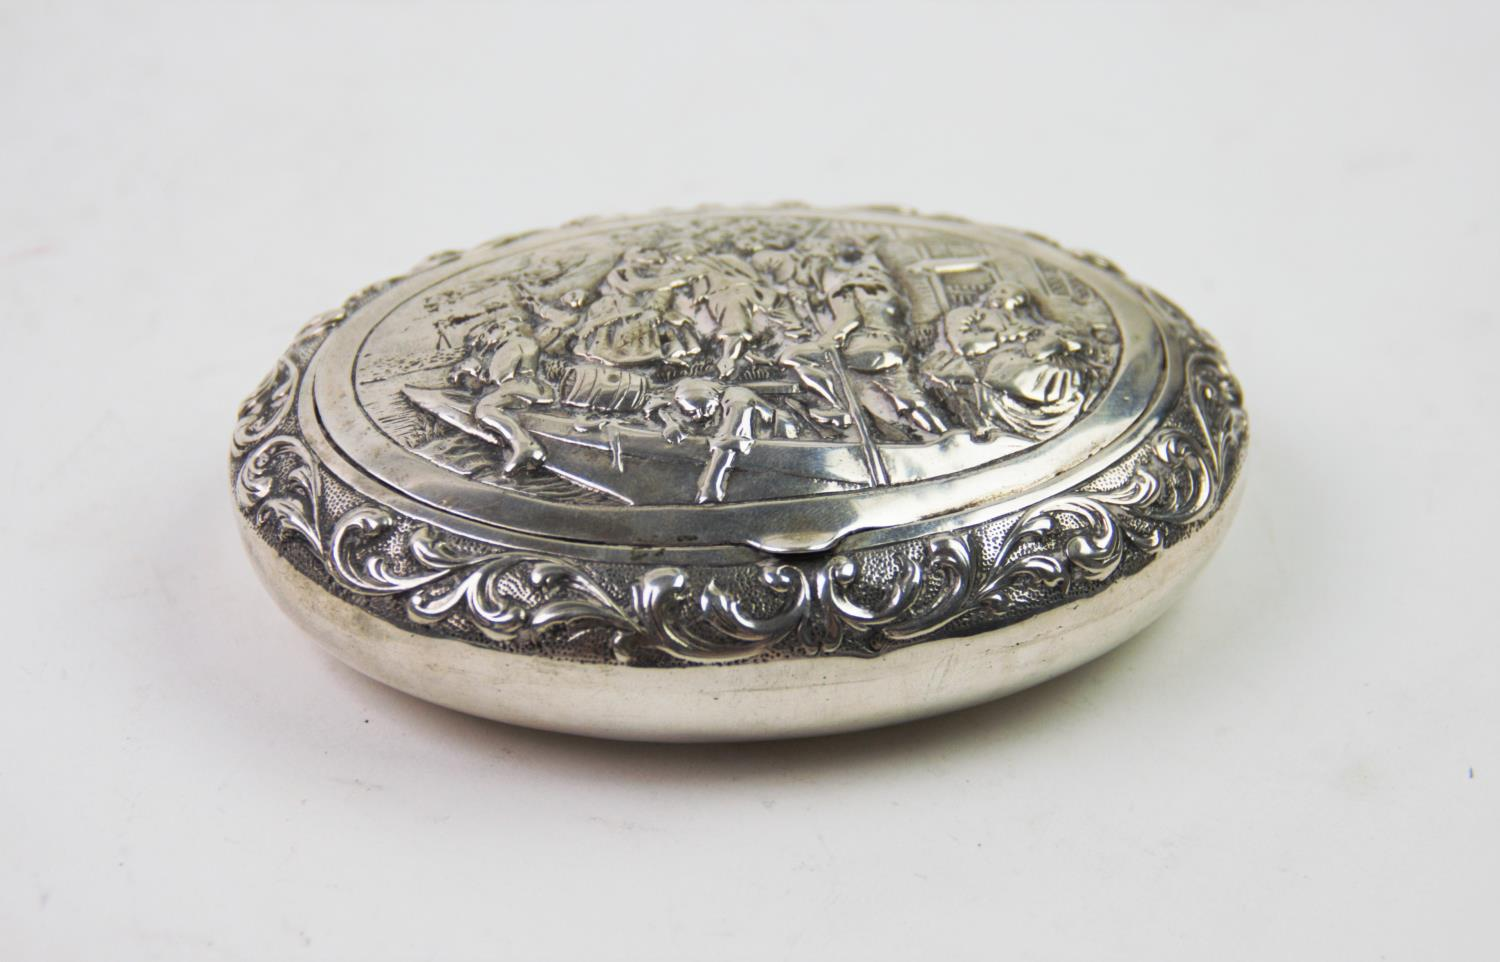 Lot 37 - A 19th century Dutch silver snuff box, of oval form, the cover decorated with embossed figures on